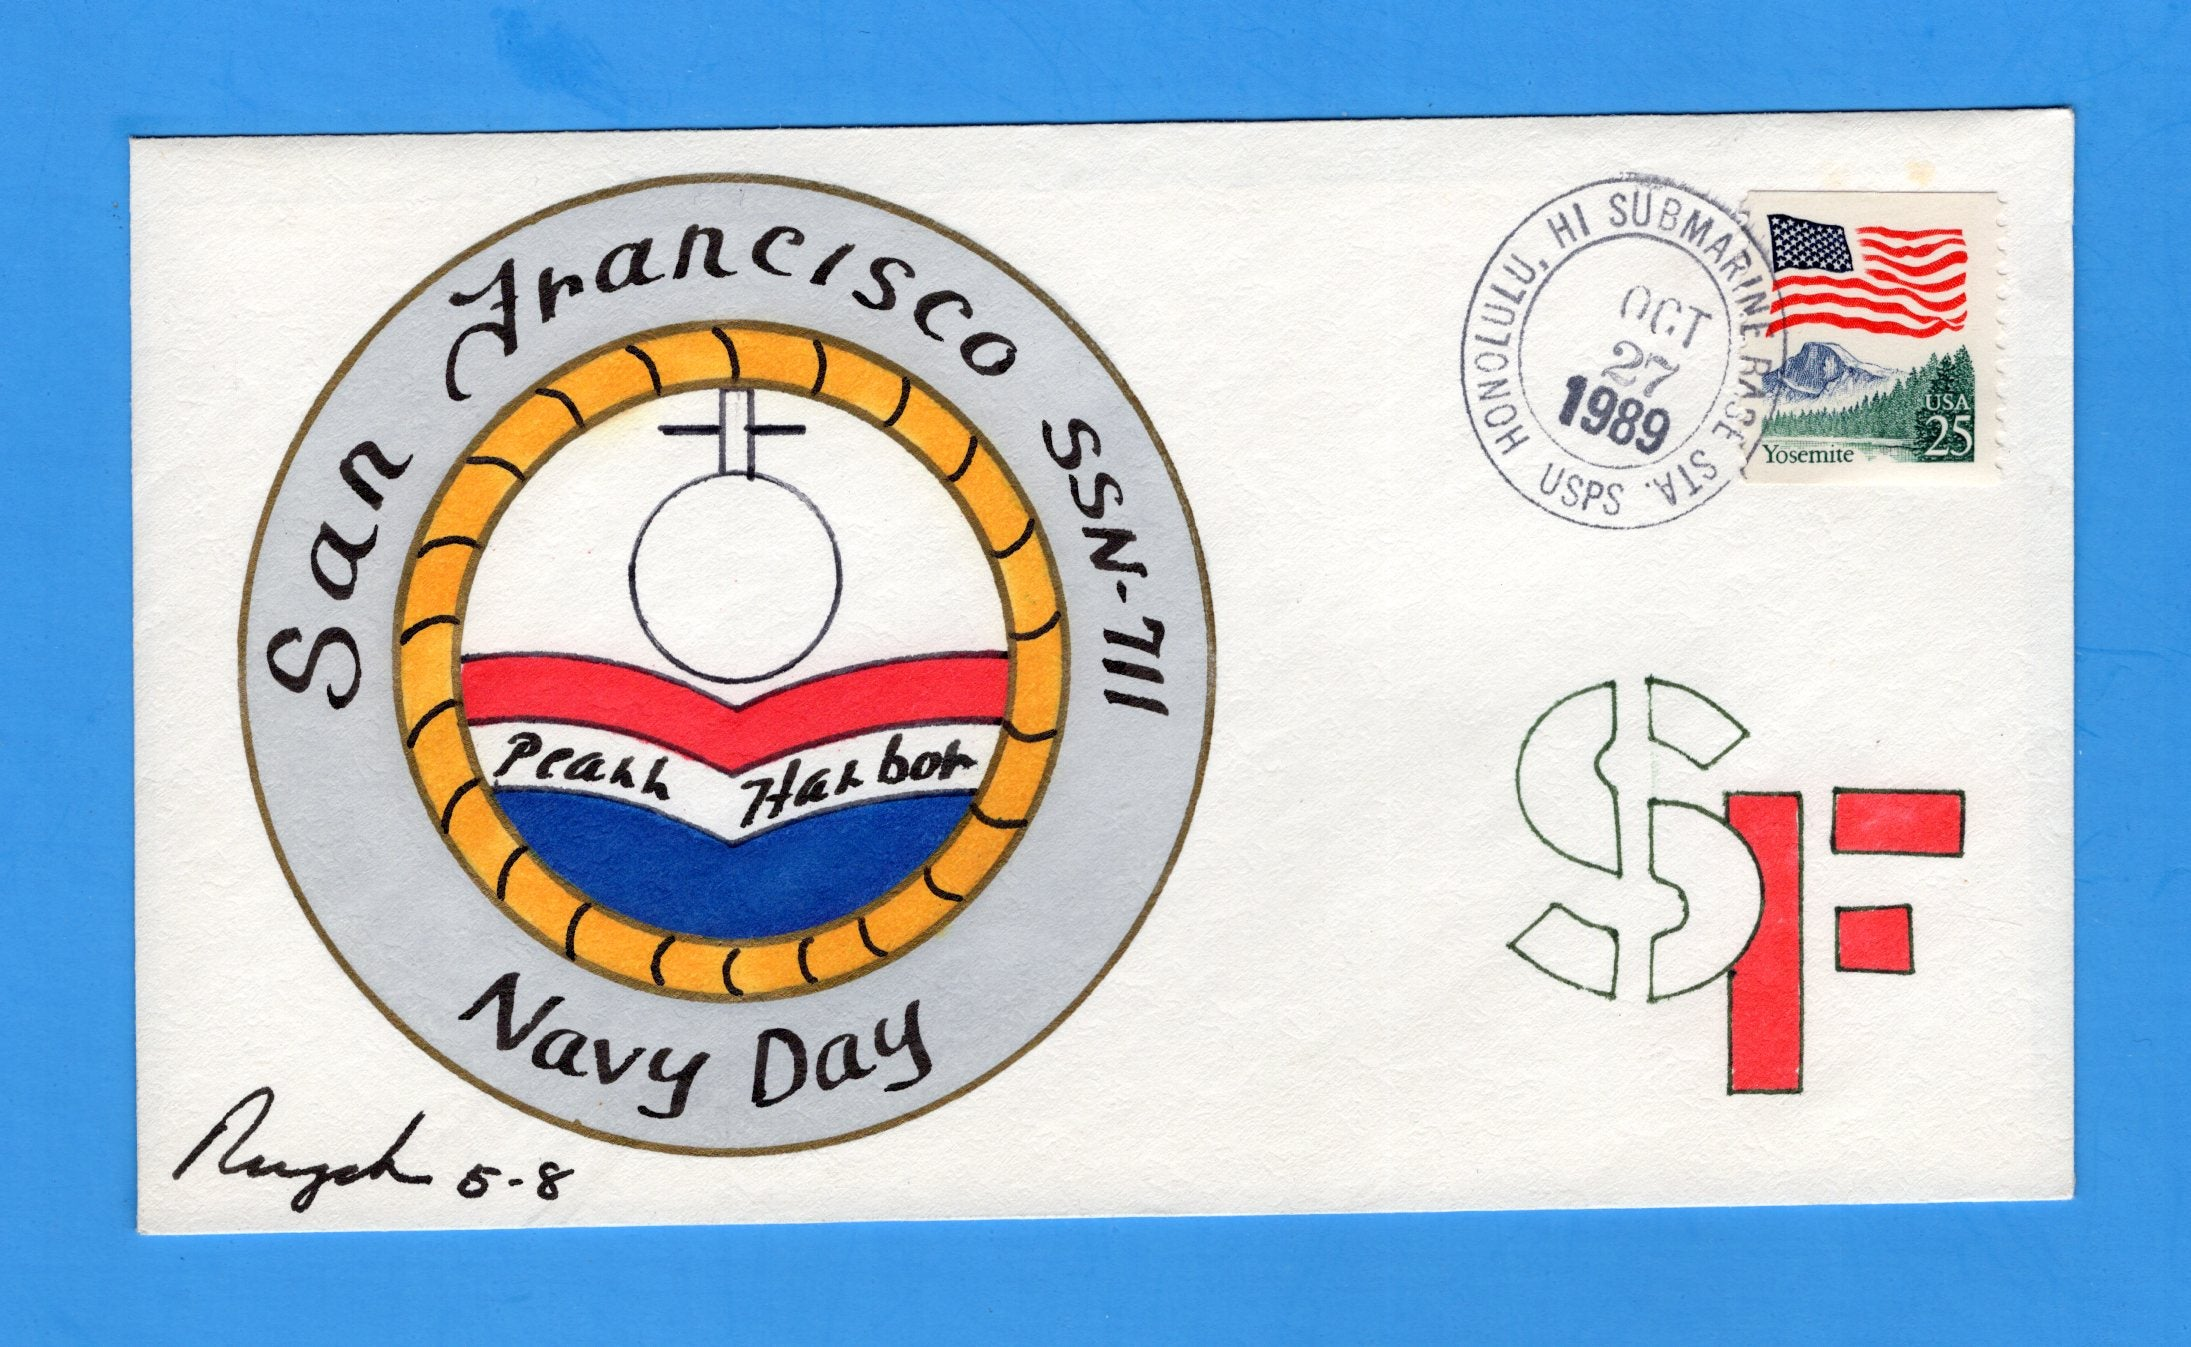 USS San Francisco SSN-711 Navy Day October 27, 1989 - Rogak Cachet